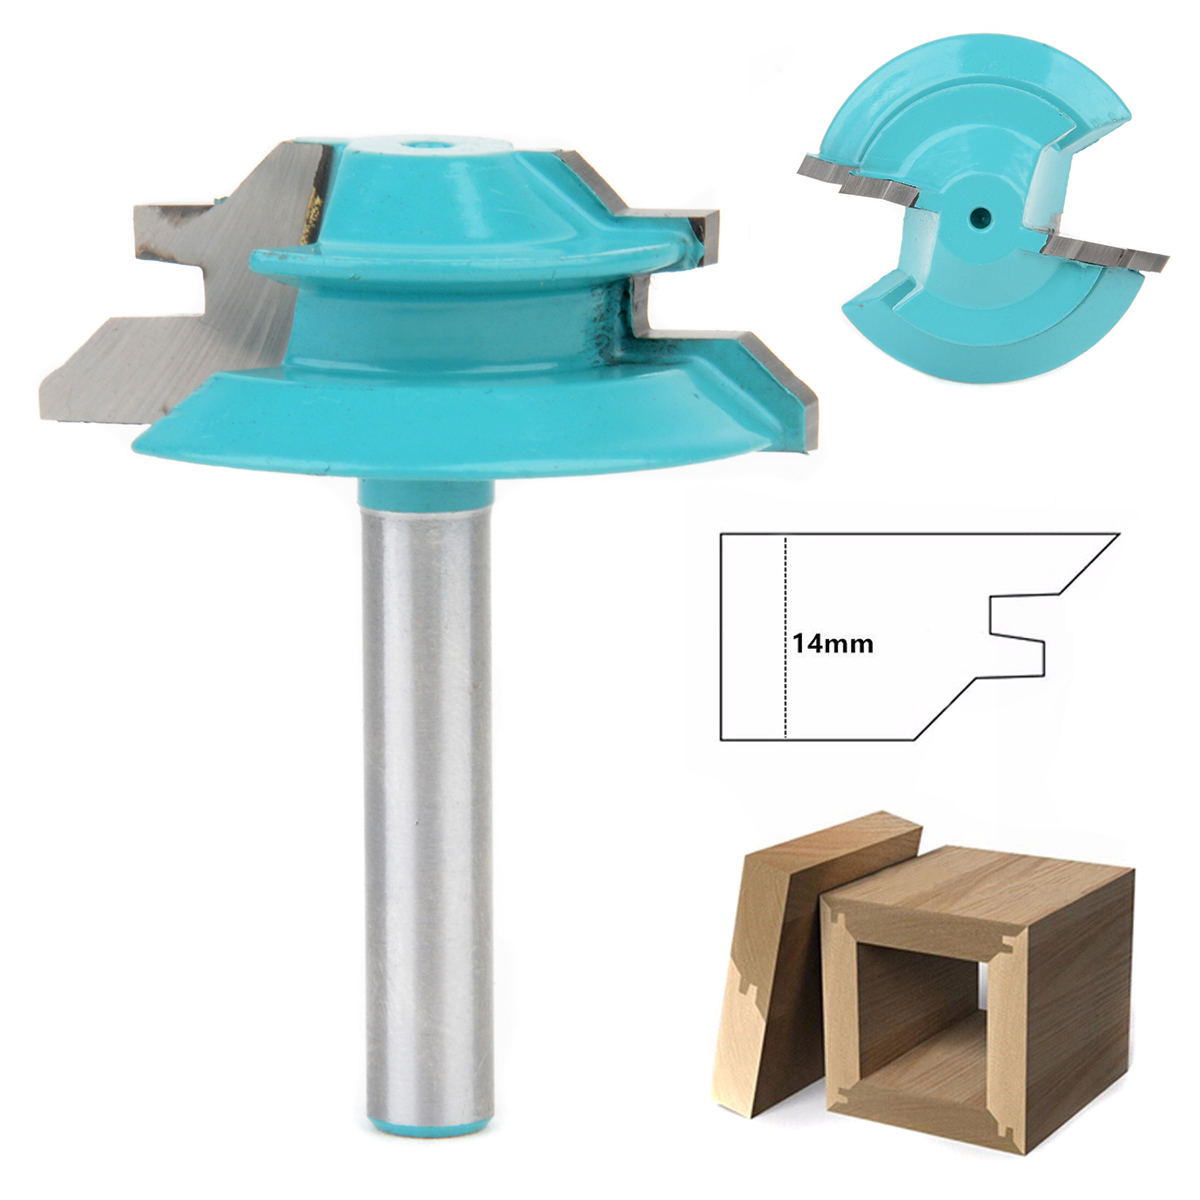 New 1PC 1/4 Shank Lock Miter Router Bit 45 Degree Woodworking Cutter 1-1/2 Diameter For Capenter Tools 1 2 shank 2 1 4 diameter bottom cleaning router bit mayitr high precision woodworking milling cutter cutting tools for mdf